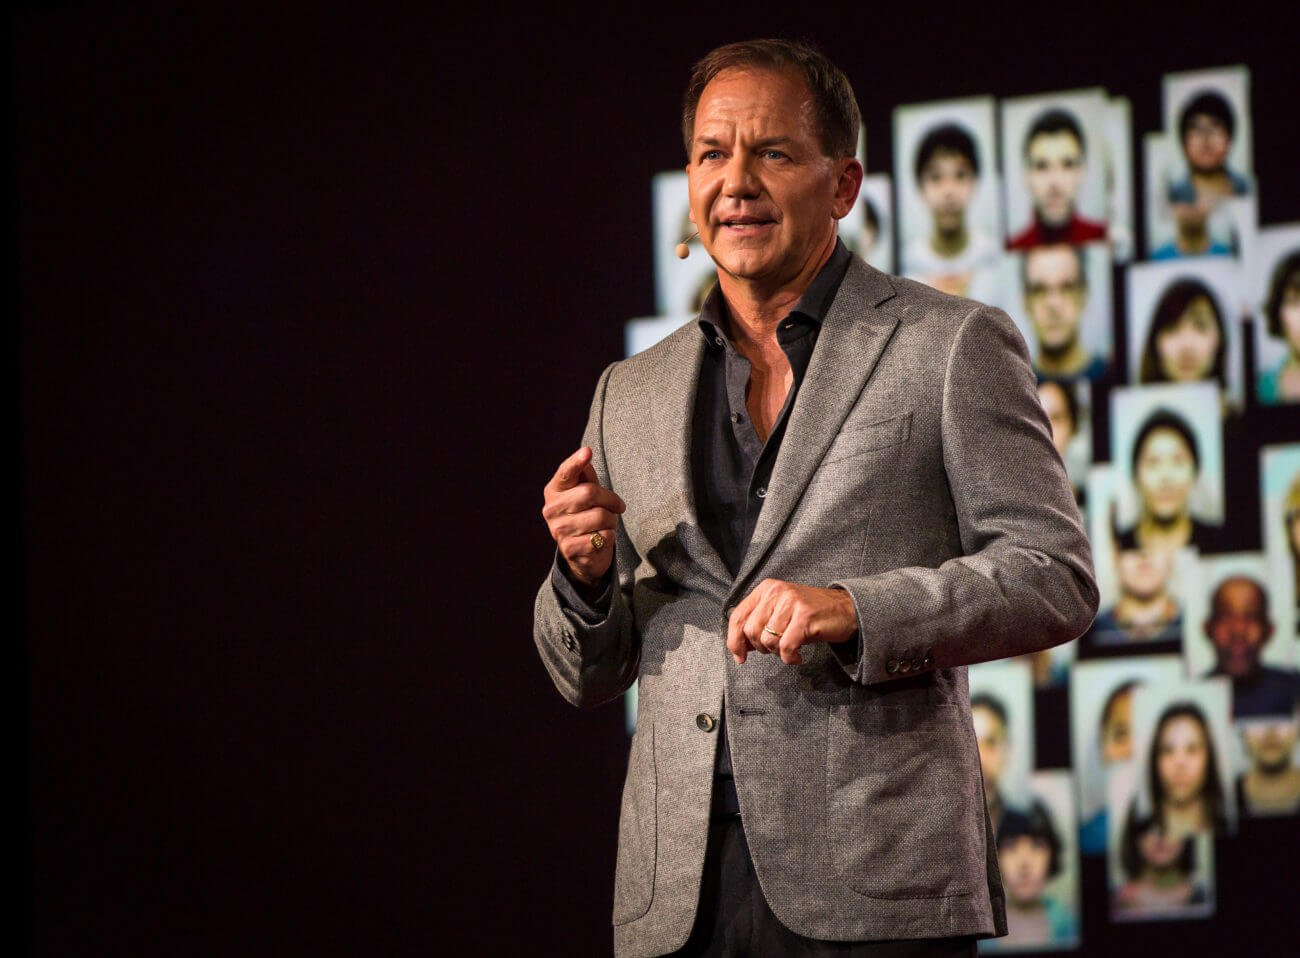 Billionaire Paul Tudor Jones Needs To Acquire His Memoir Straight On Bitcoin